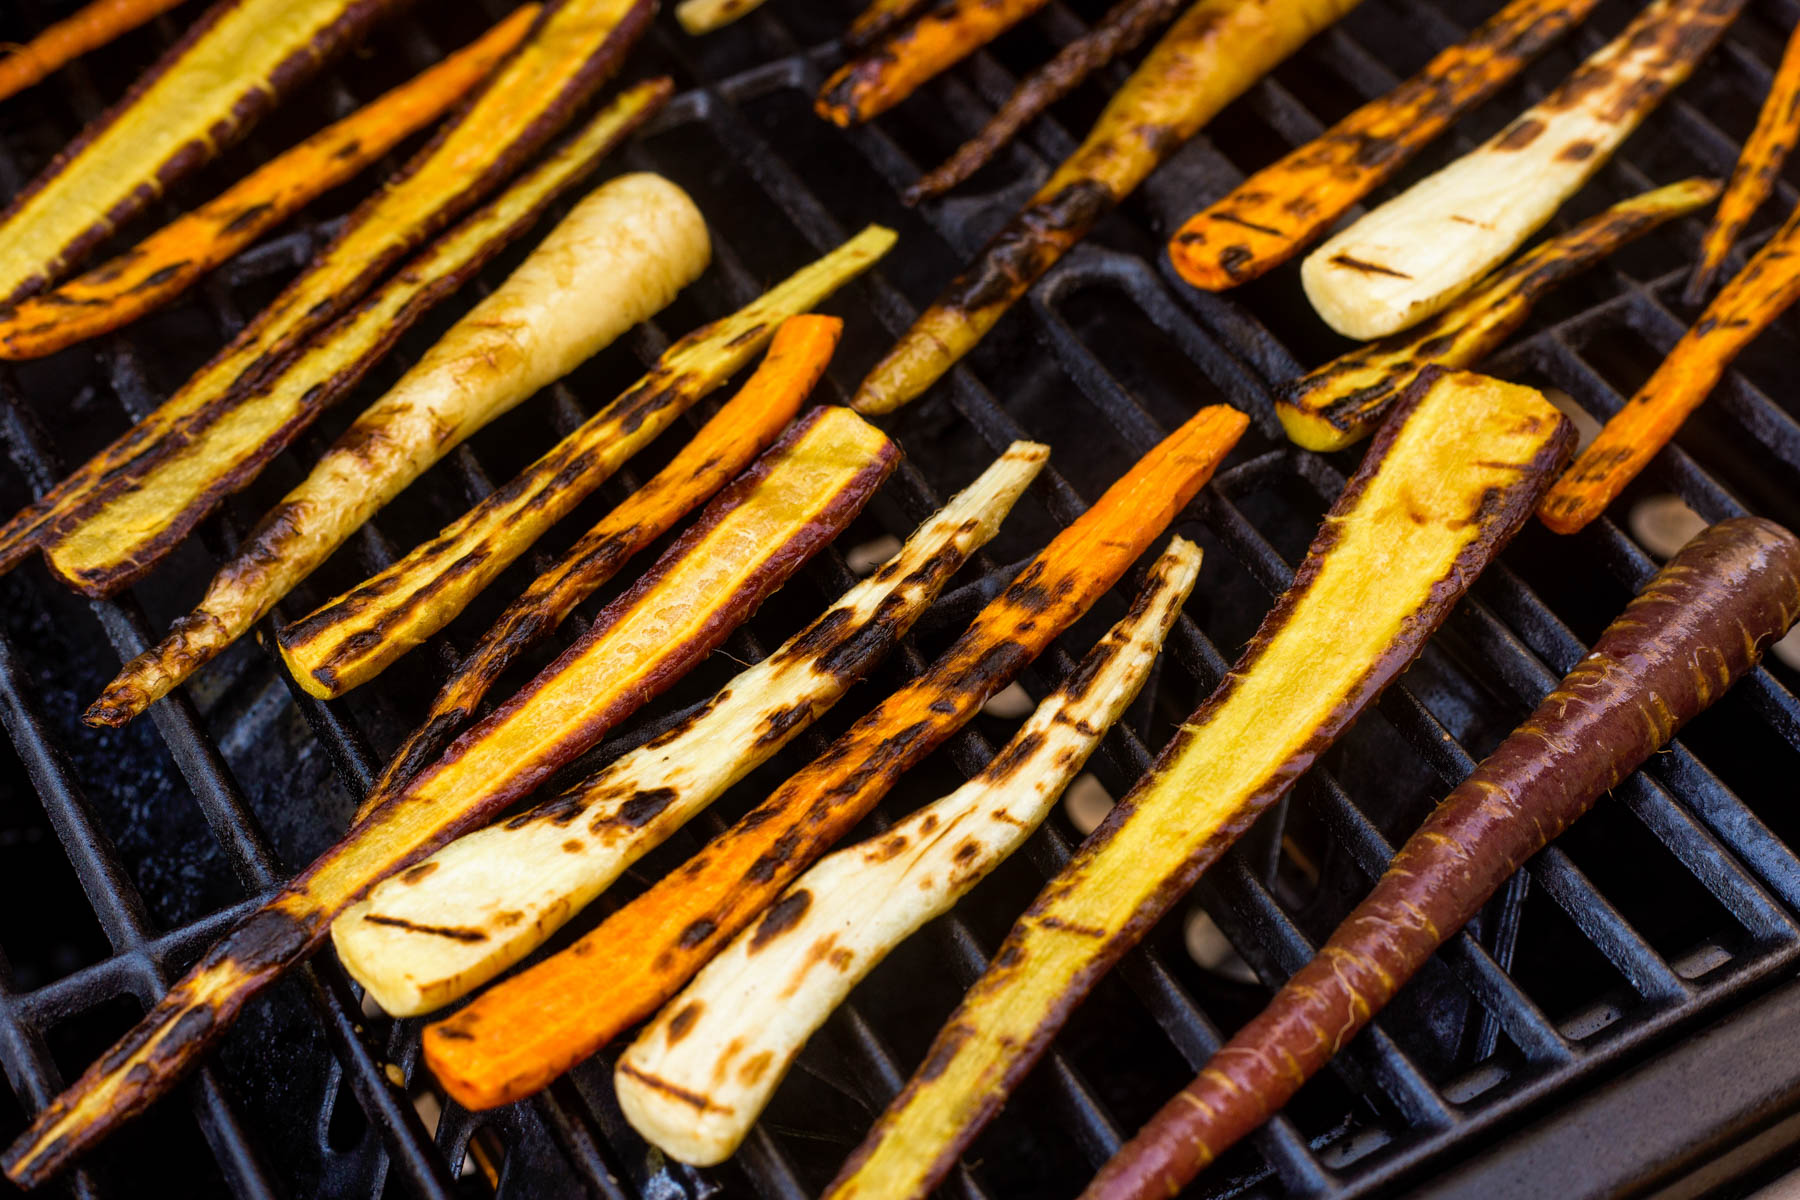 Sliced harissa grilled carrots cooking on a hot grill.